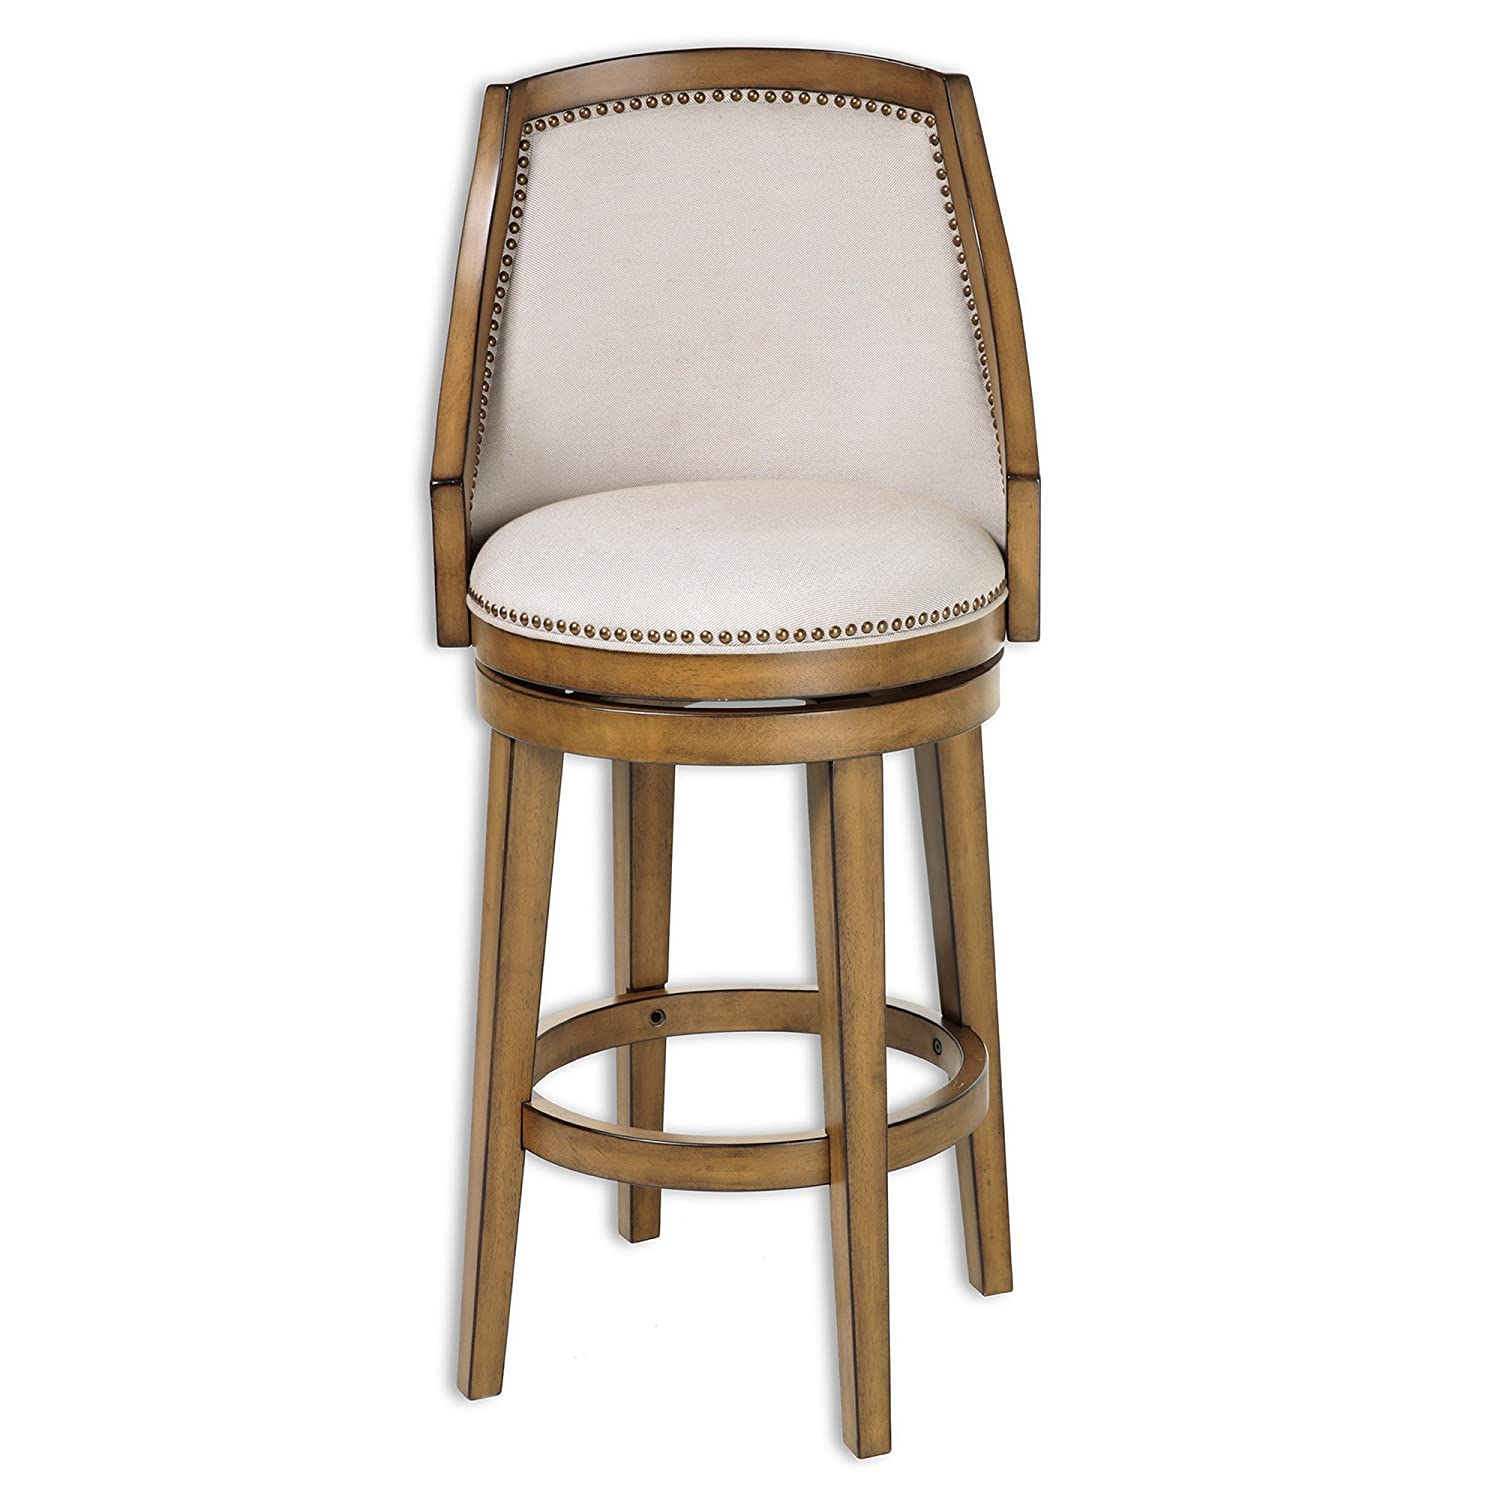 Amazon: Charleston Wood Barstool With Putty Upholstered Nail Head Trim  Swivelseat And Acorn Frame Finish, 30inch: Kitchen & Dining